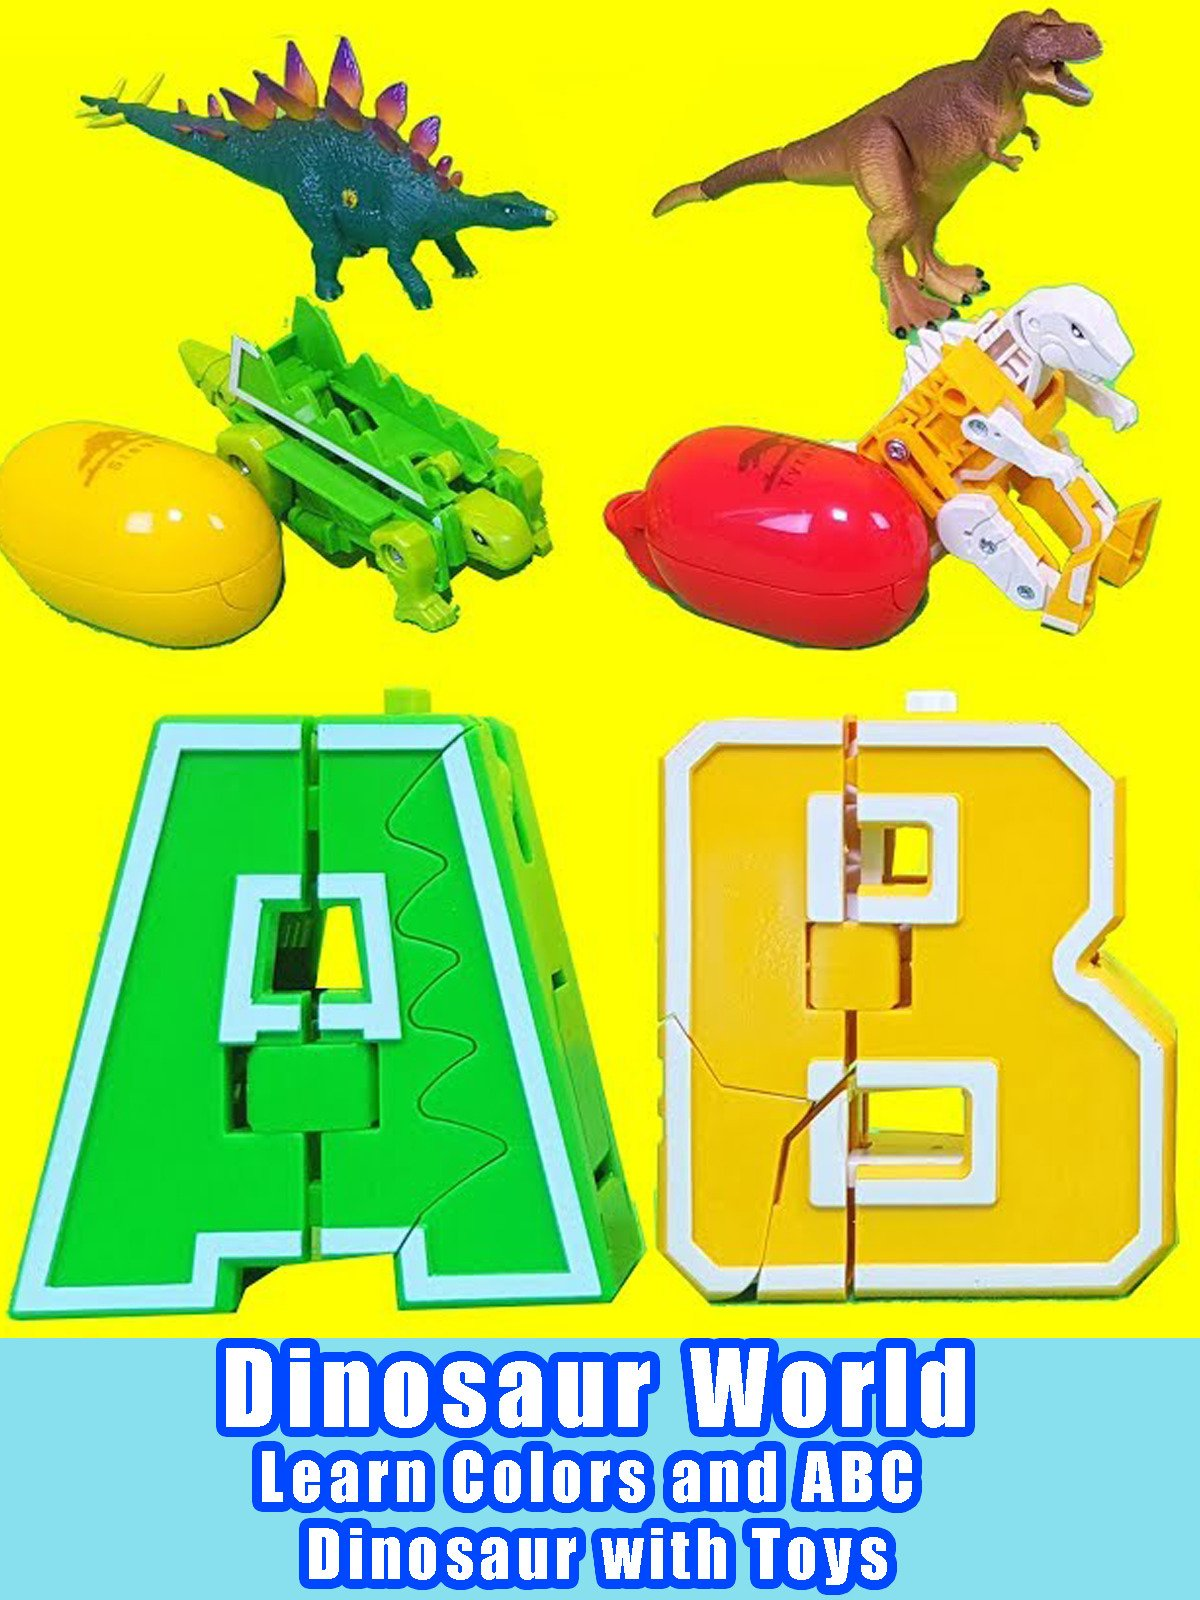 Dinosaur World - Learn Colors and ABC Dinosaur with Toys